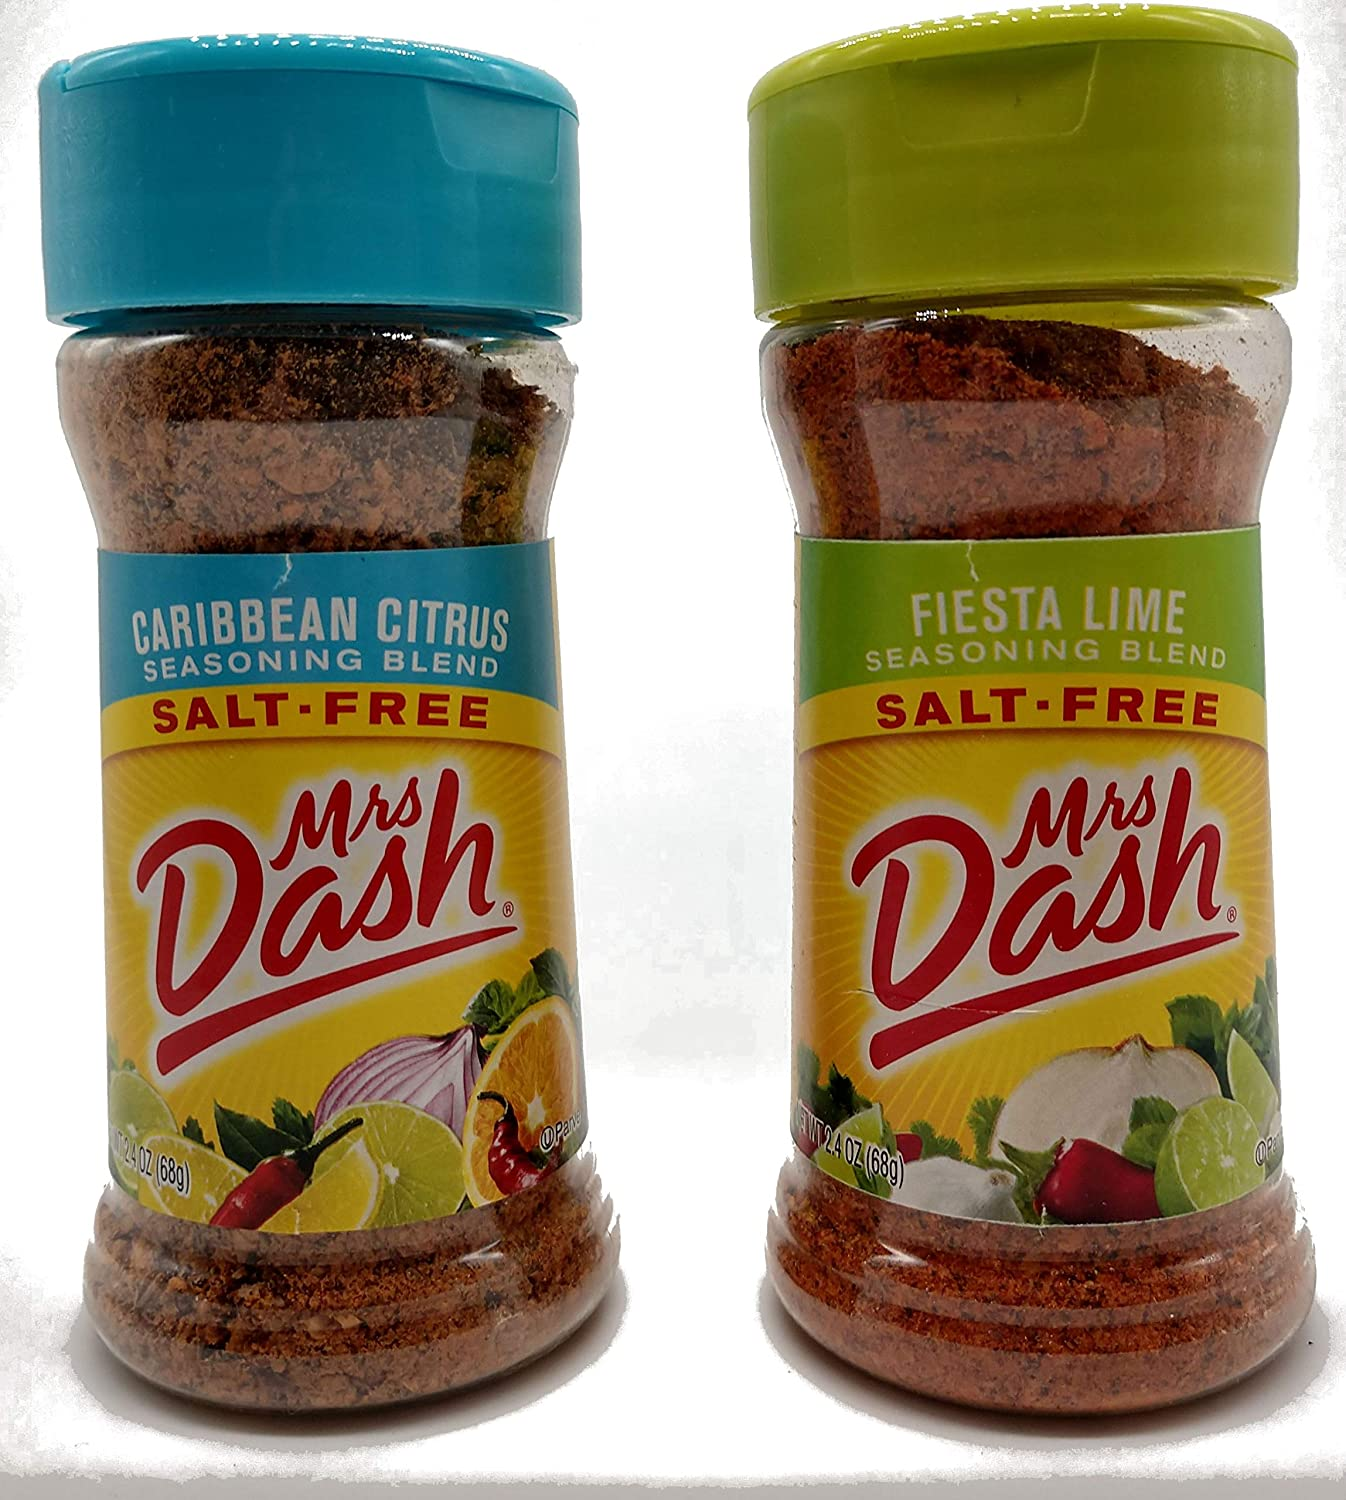 Mrs. Dash Caribbean Citrus and Fiesta Lime Bundle (2.4 oz, 1 of each flavor)